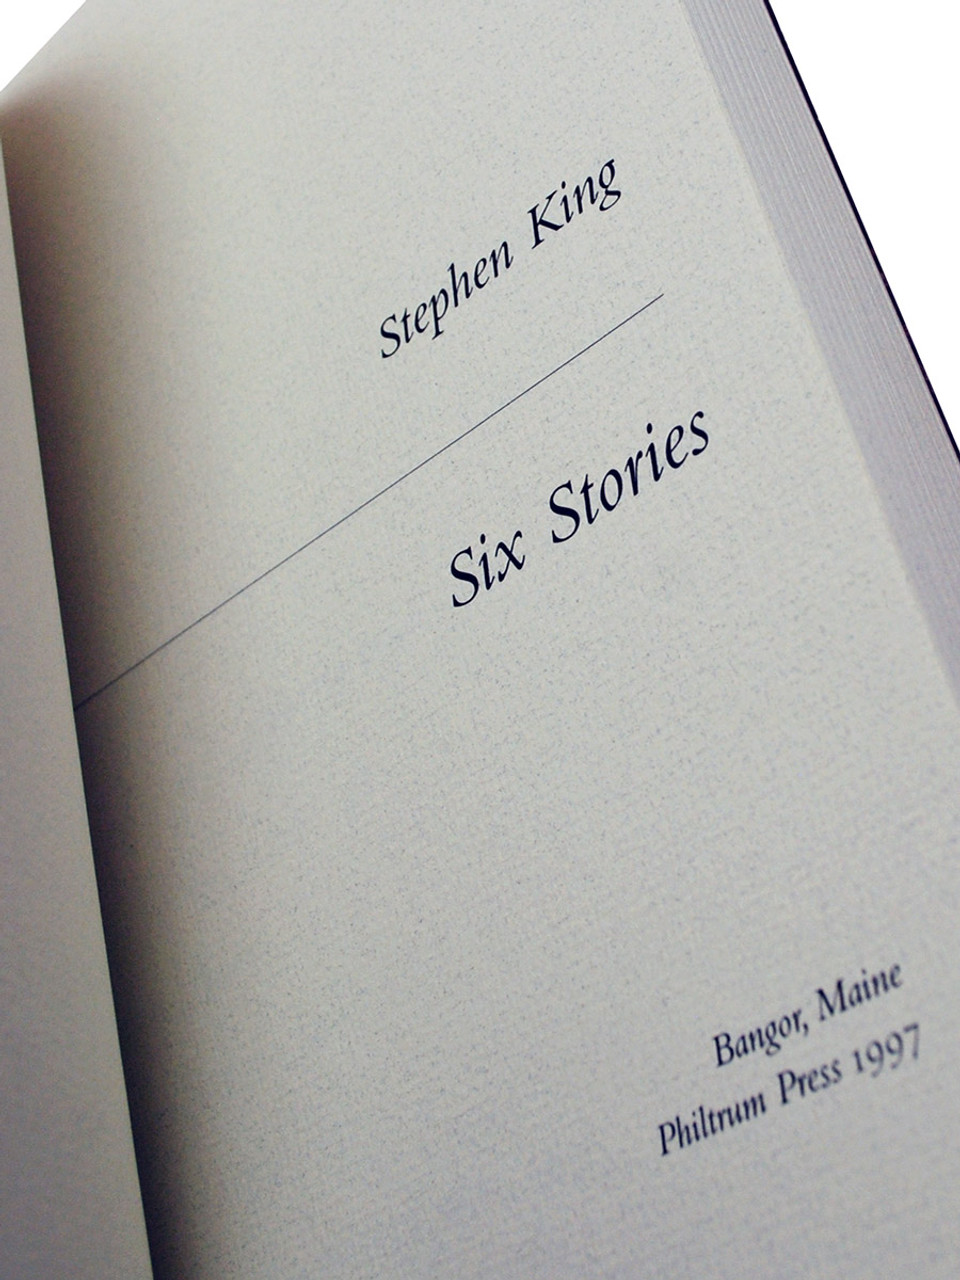 """Stephen King """"Six Stories"""" Signed Limited Edition No. 328 of 1,100 w/Custom Matching Tray-case [Fine]"""